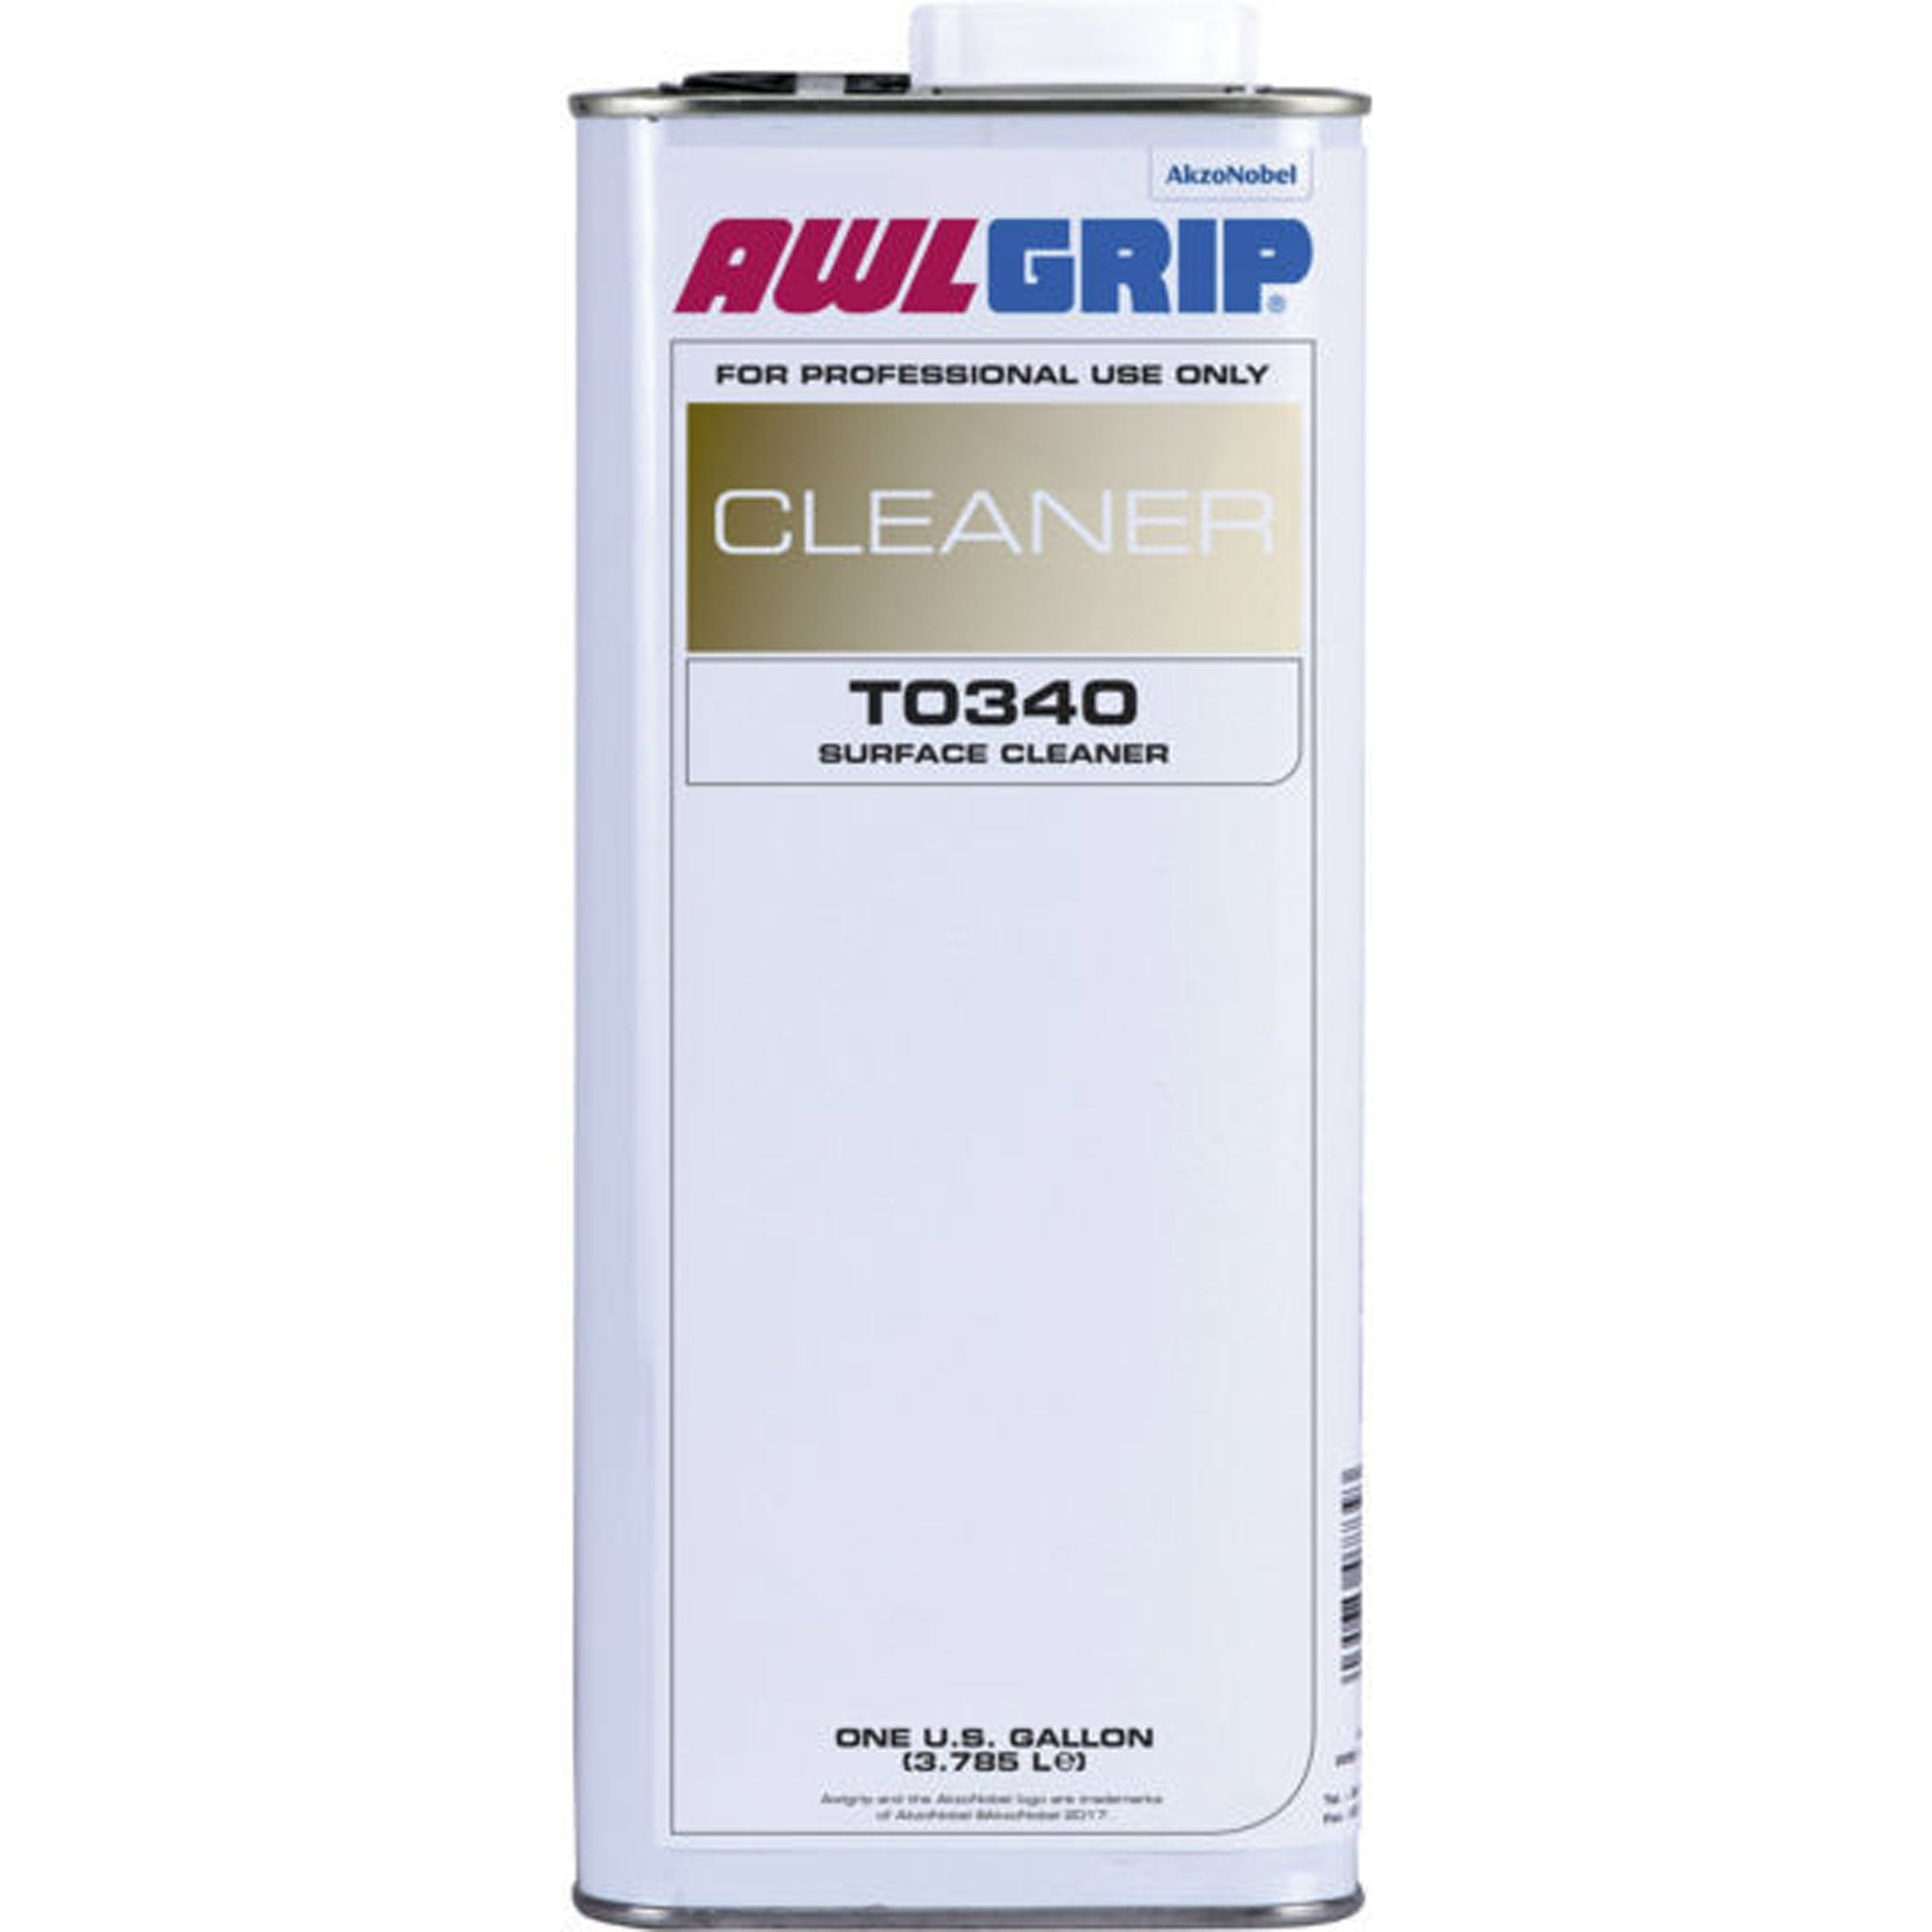 Awlgrip Surface Cleaner/Degreaser T0340 - professional use only - Arthur Beale